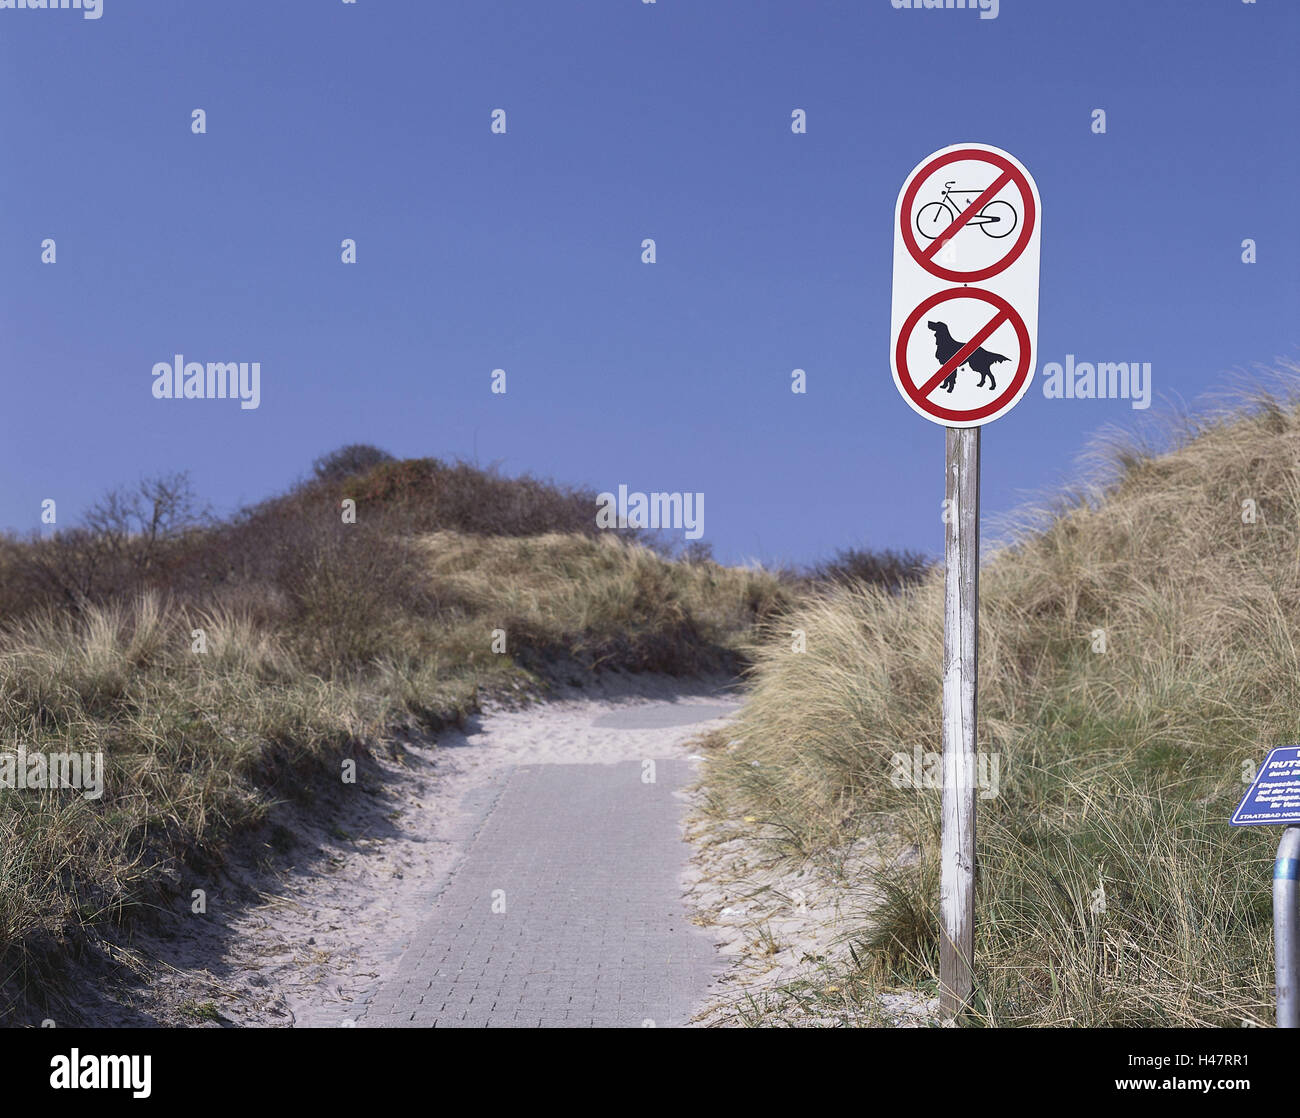 Germany, Lower Saxony, island, Langeoog, dunes, no parking sign, dogs, bicycles, North Germany, North Sea island, Stock Photo